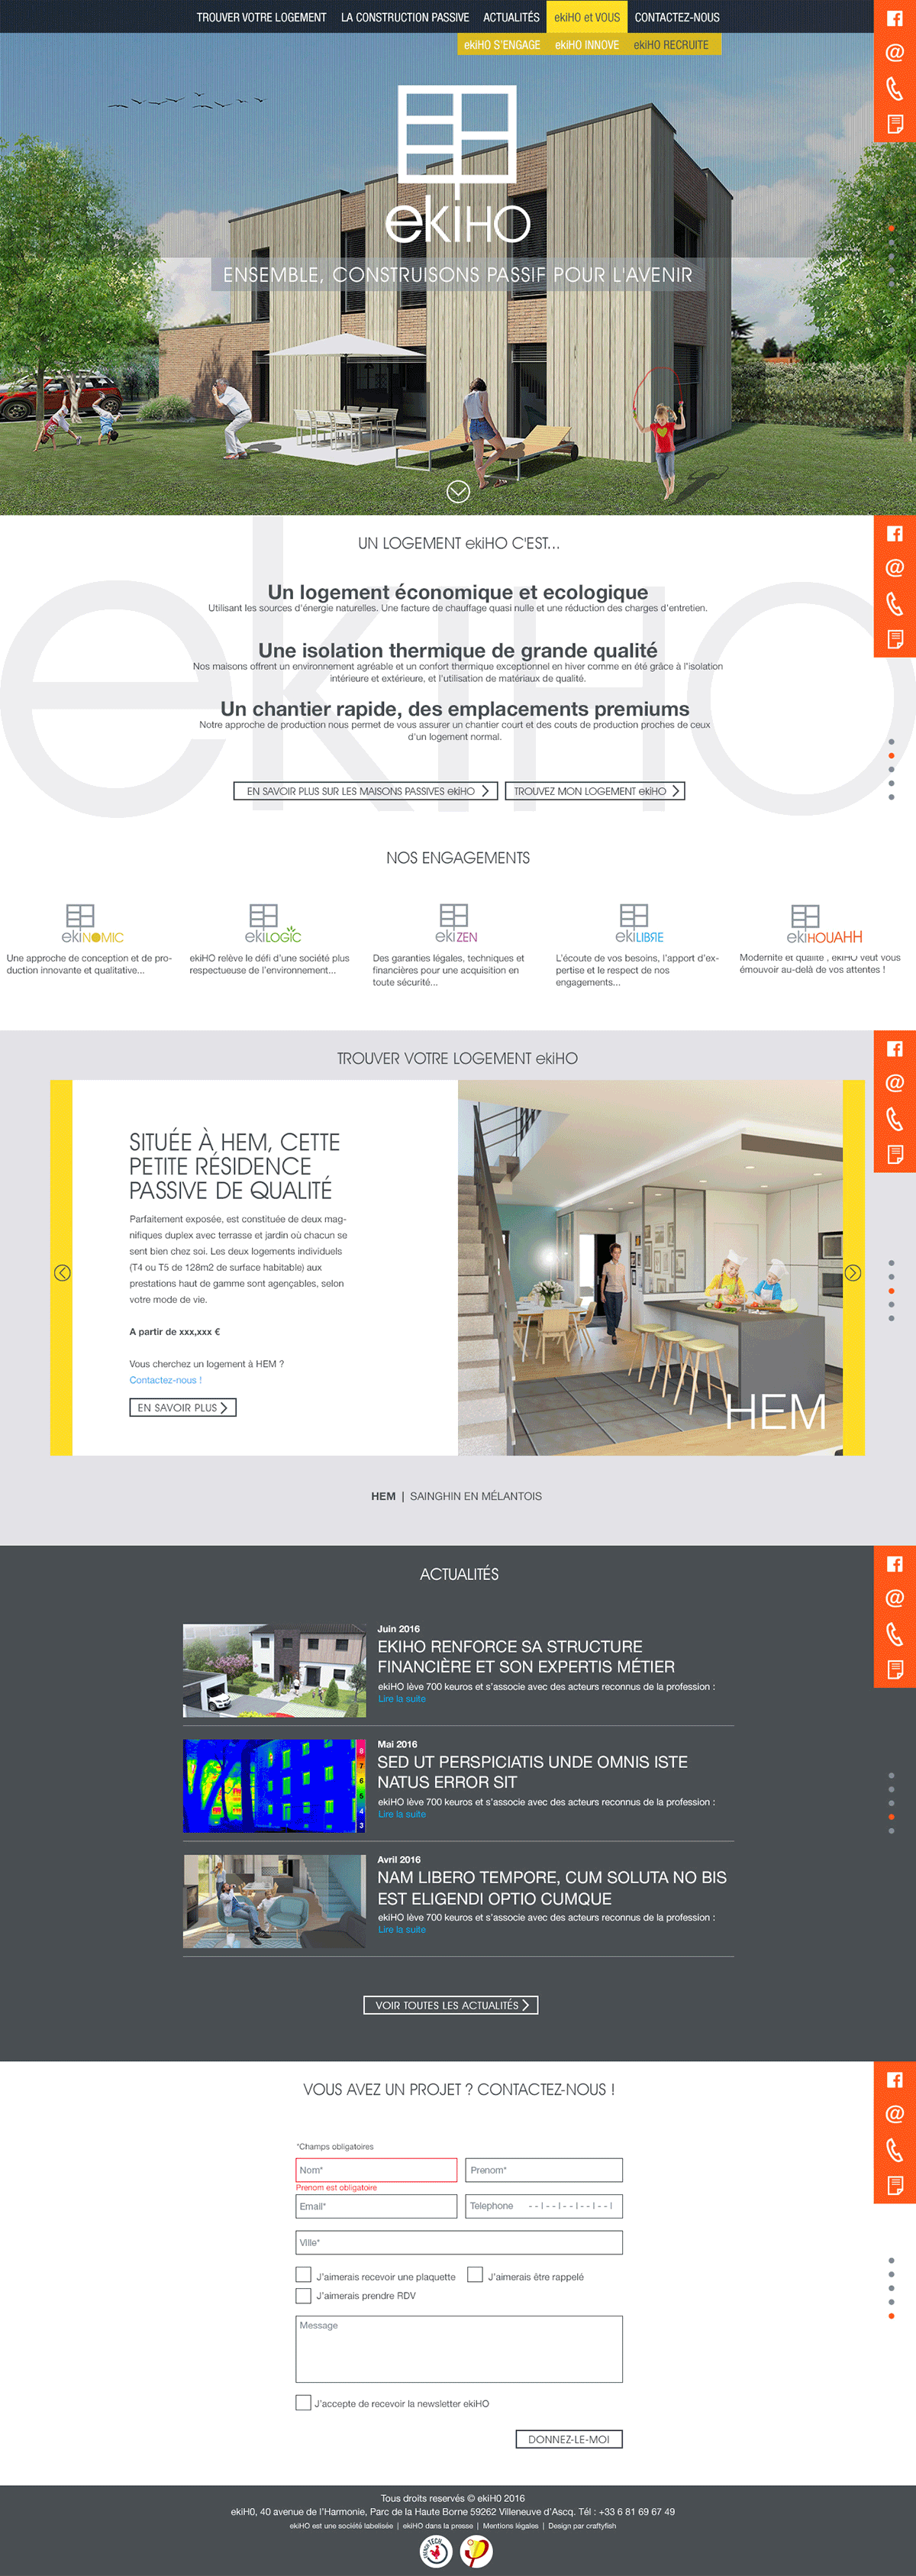 ekiHO passive housing. Branding and website design